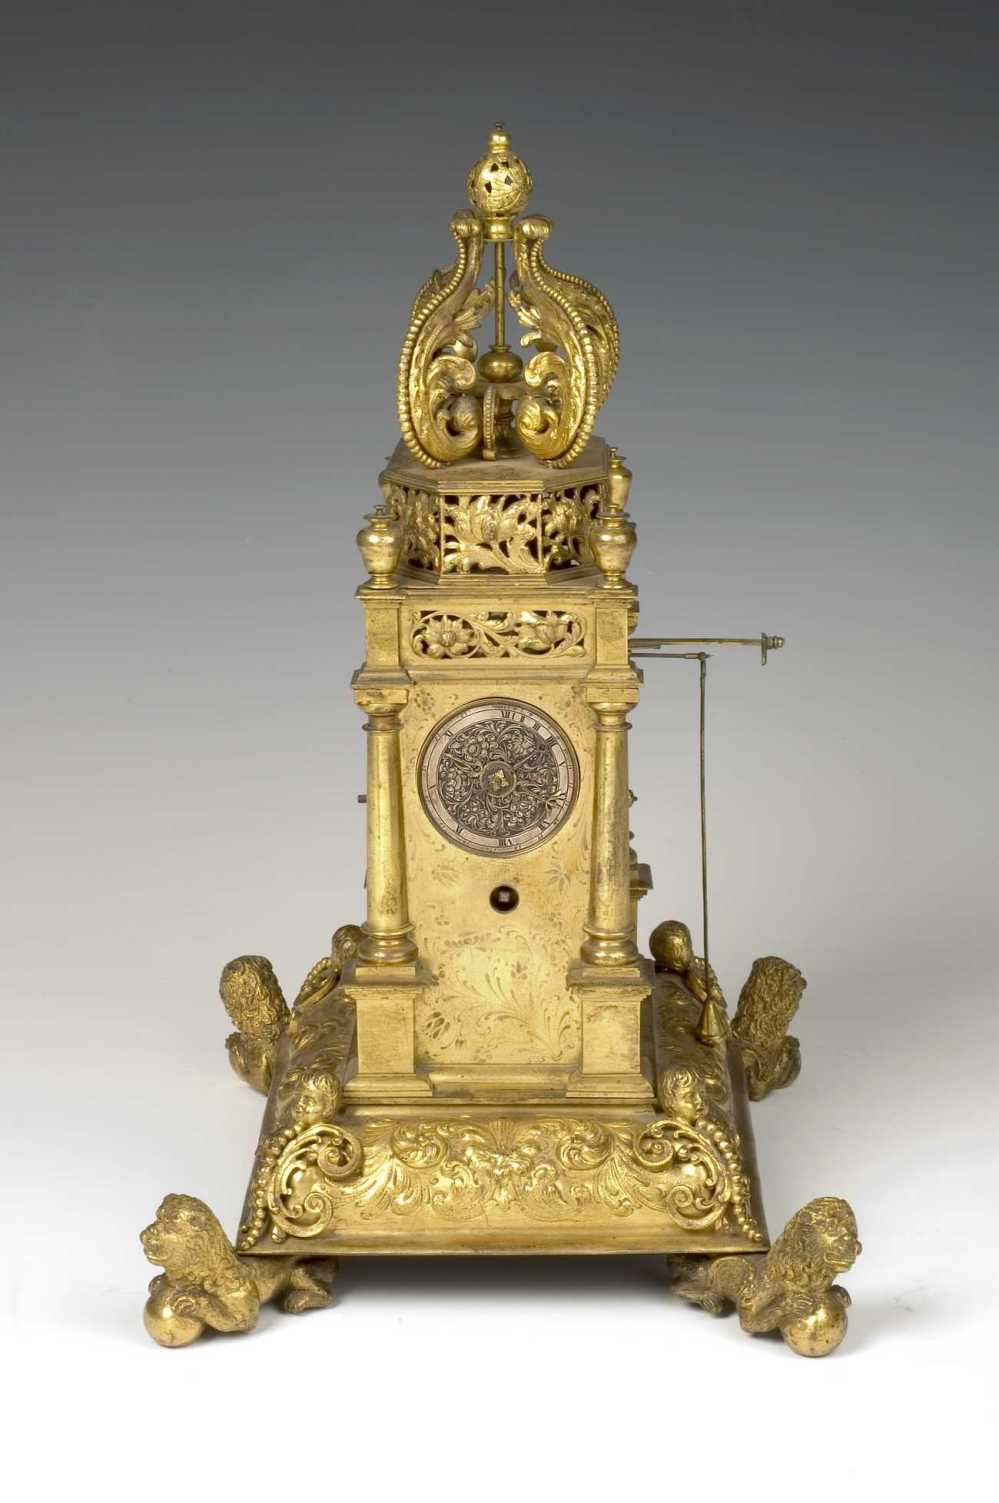 preview image for Astrolabe Clock, by Johann Leonhardt Bommel, Nuremberg, c. 1686?